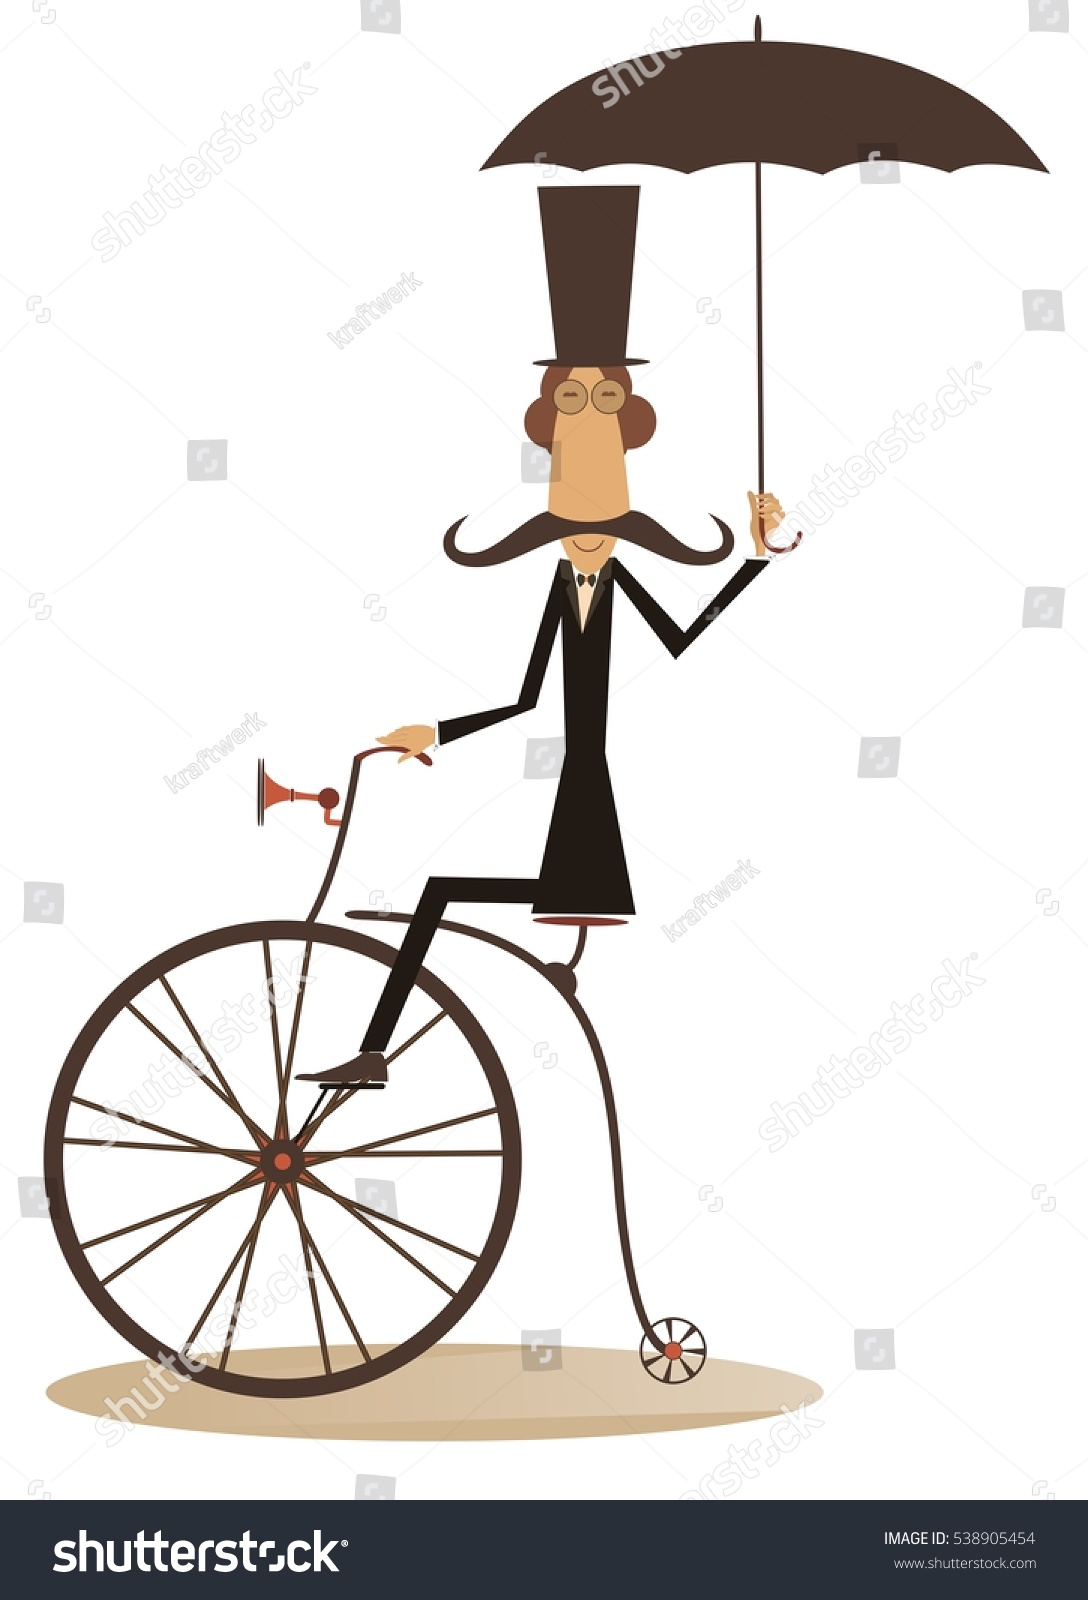 Cartoon Man Rides Bike Gentleman Mustache Stock Vector 538905454